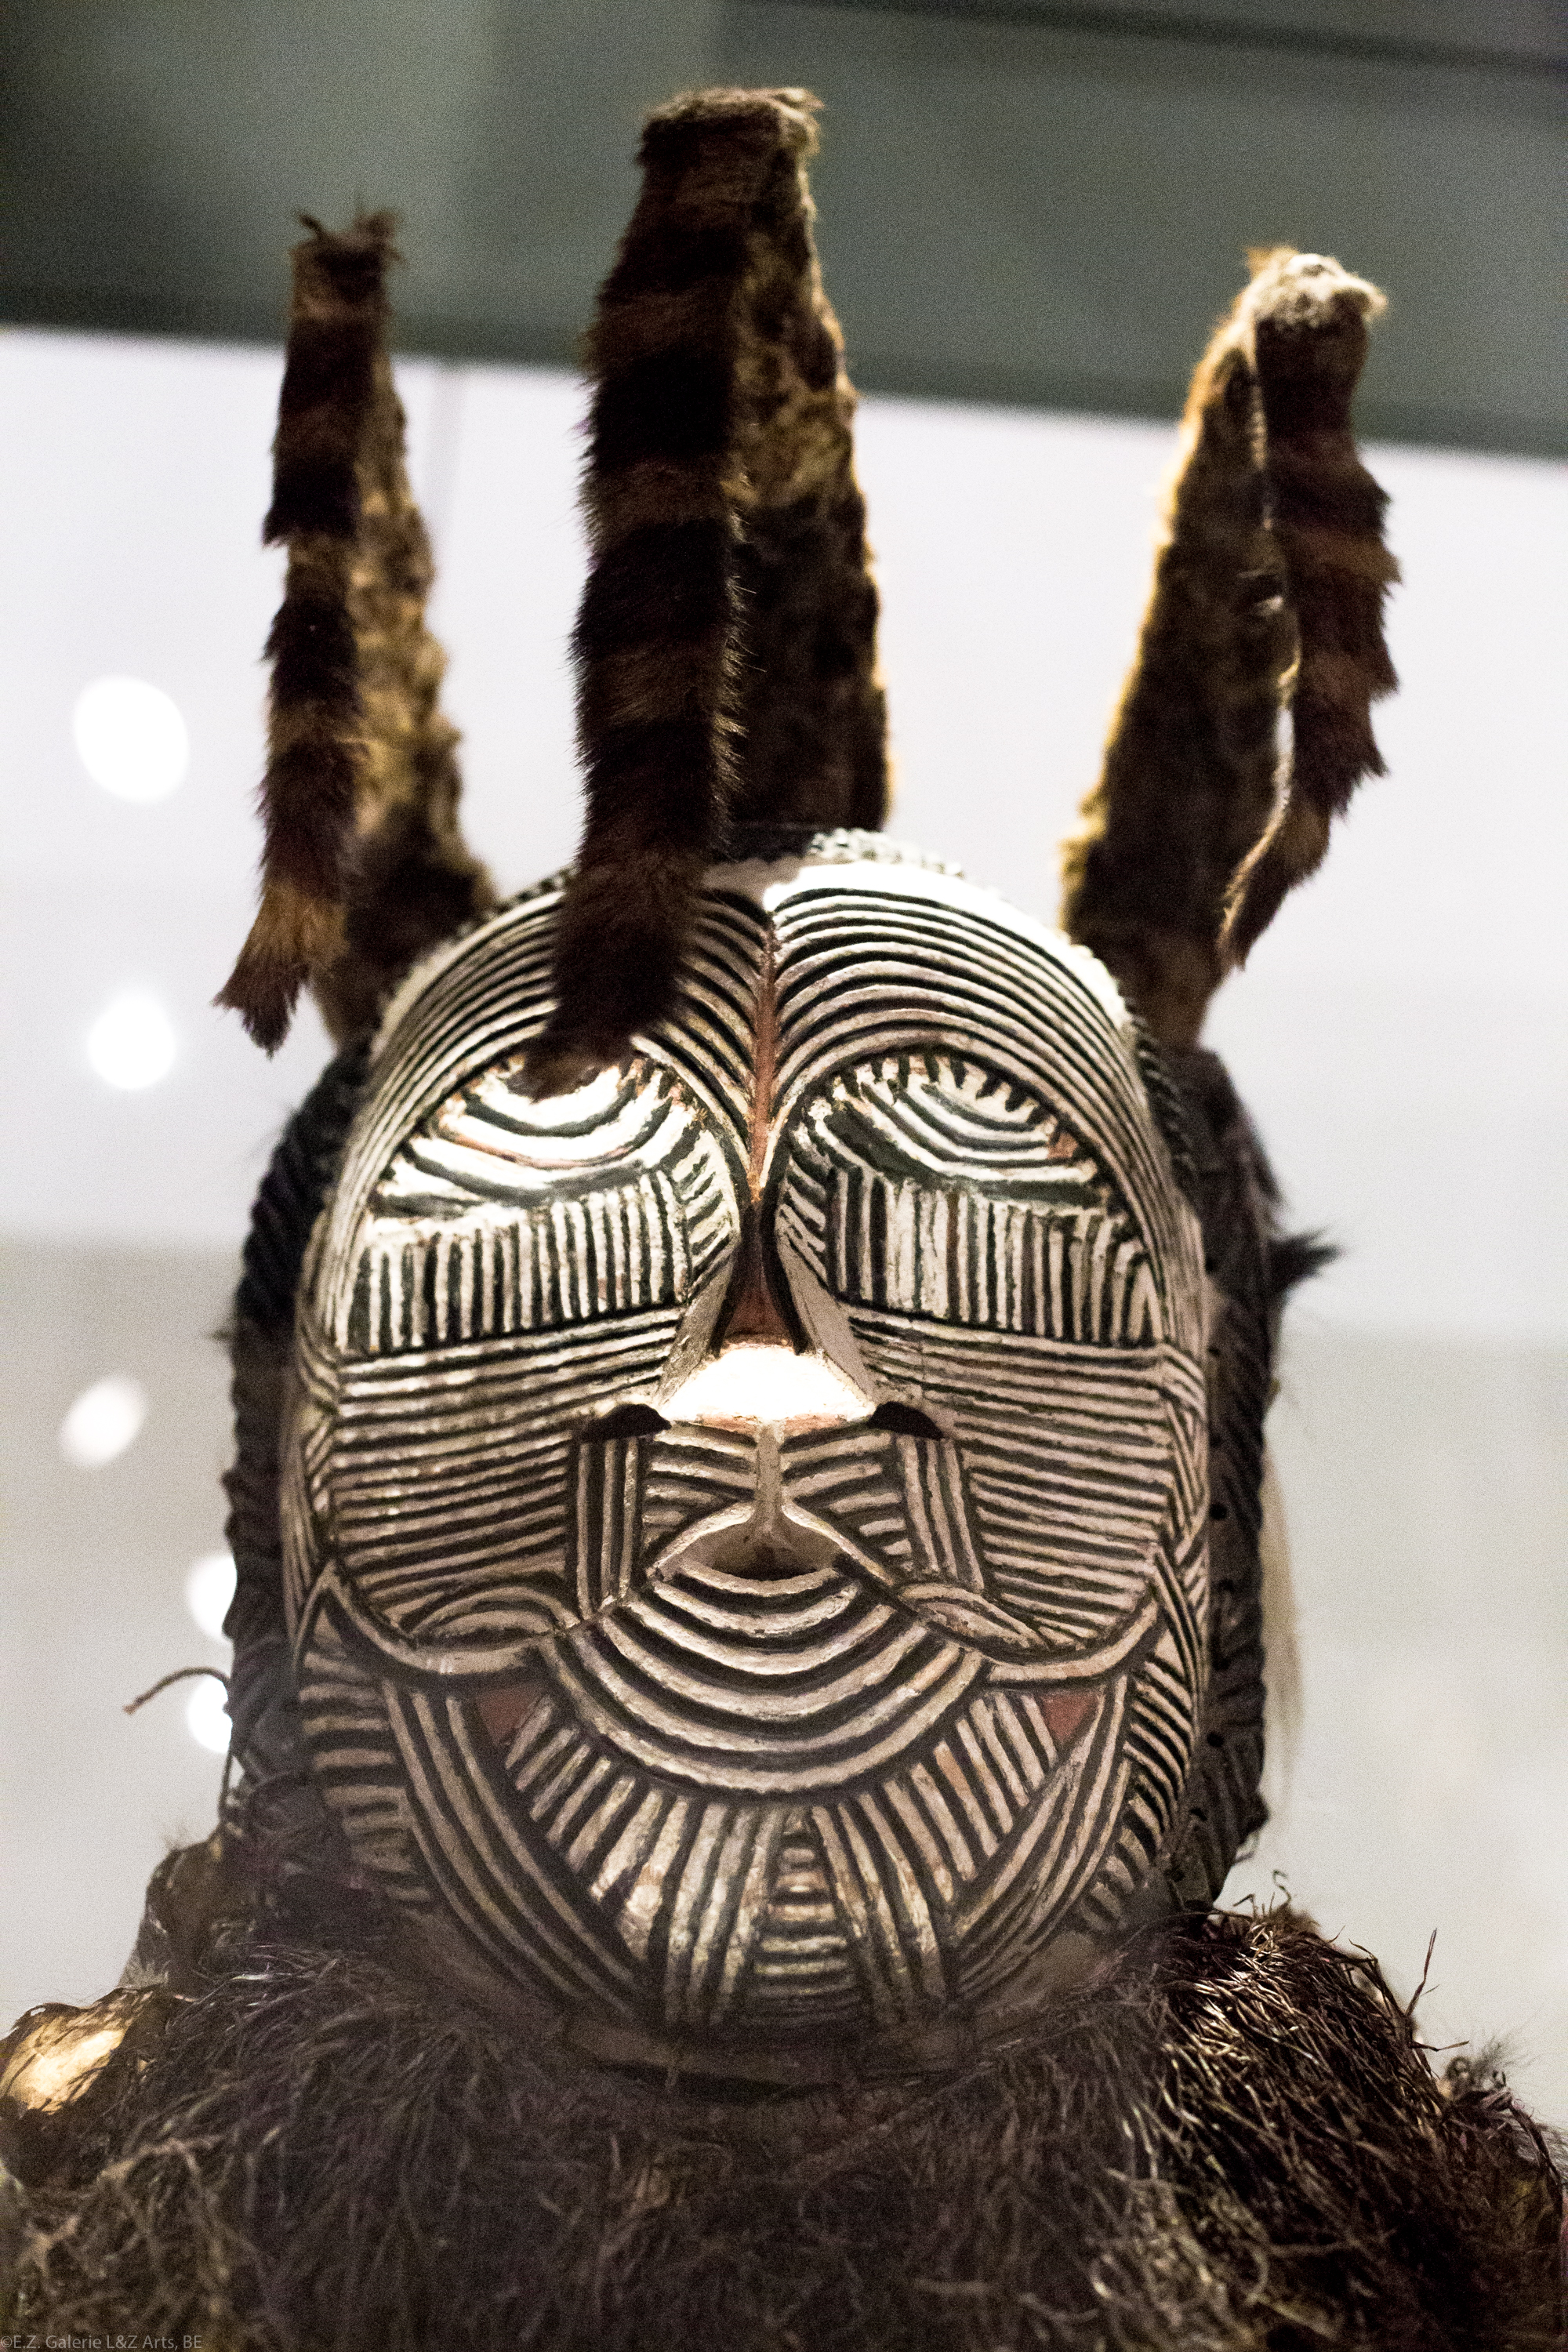 art-tribal-africain-londres-british-museum-sainsbury-galleries-bronze-benin-statue-masque-ivoire-africa-london-bini-edo-galerie-lz-arts-belgique-france-28.jpg